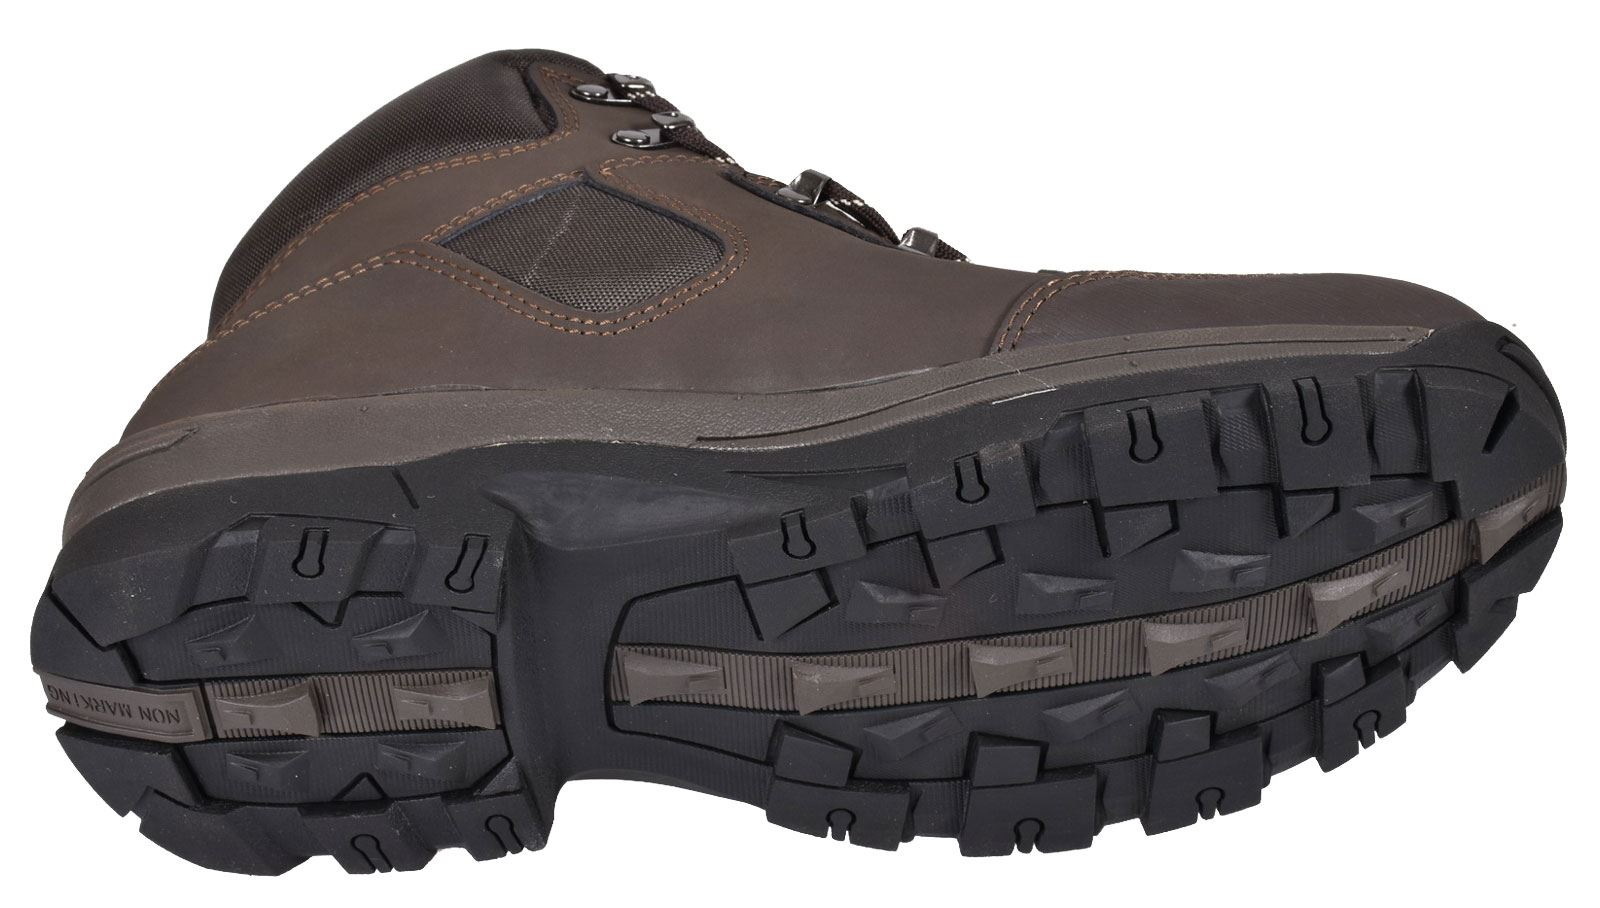 Northwest-Womens-Leather-Walking-Hiking-Trail-Waterproof-Ankle-High-Rise-Boots